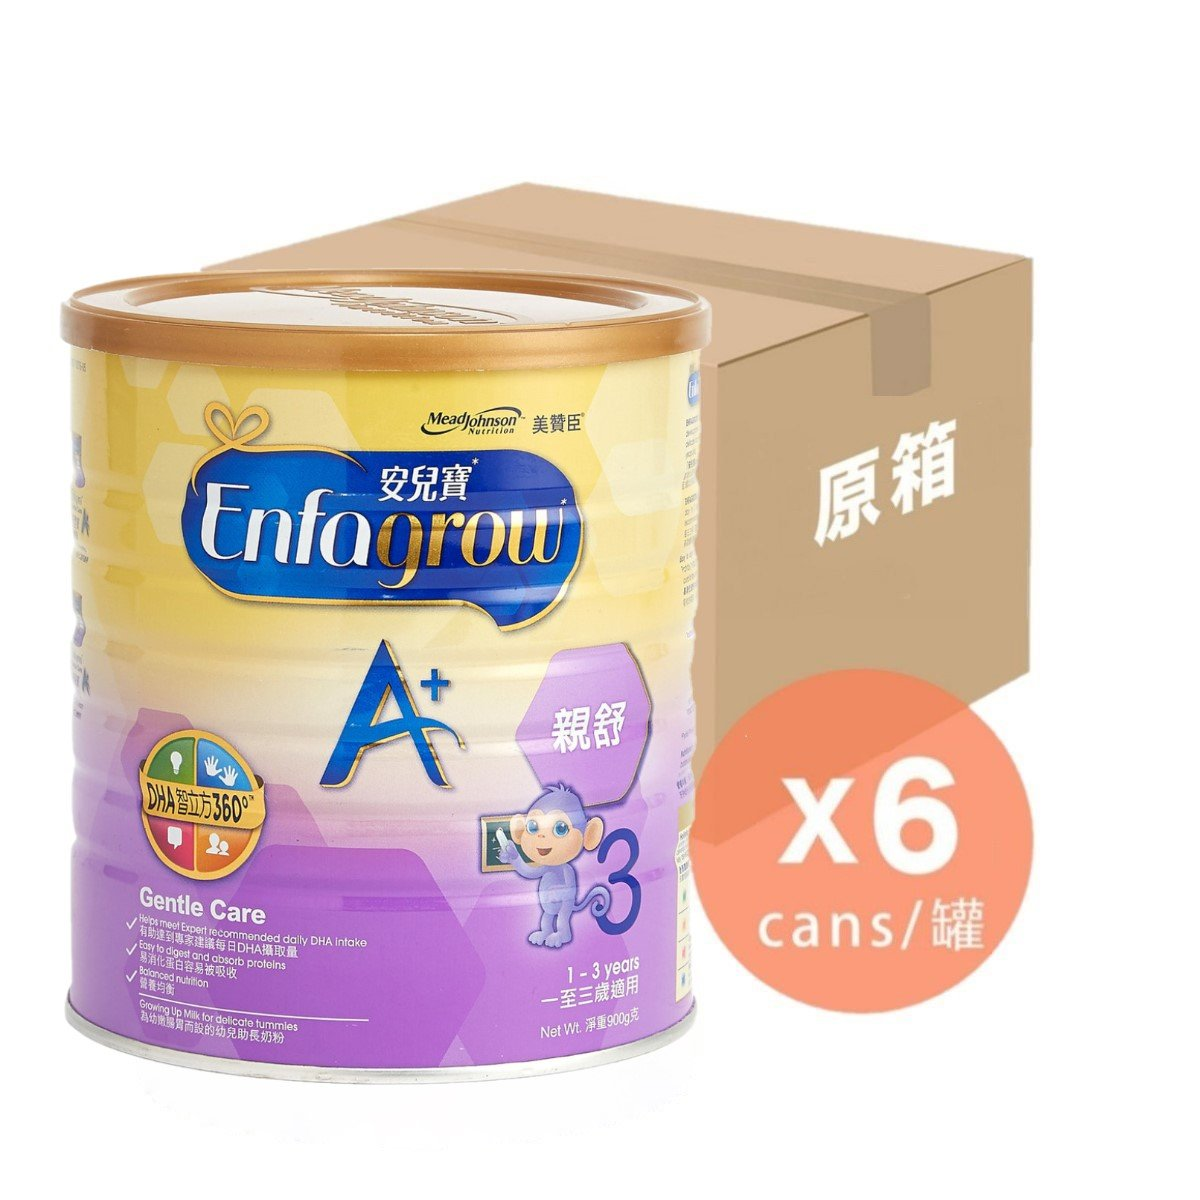 [Official Authentic][Full Case] Enfagrow A+ 3 Gentle Care Milk Powder (1-3 years)